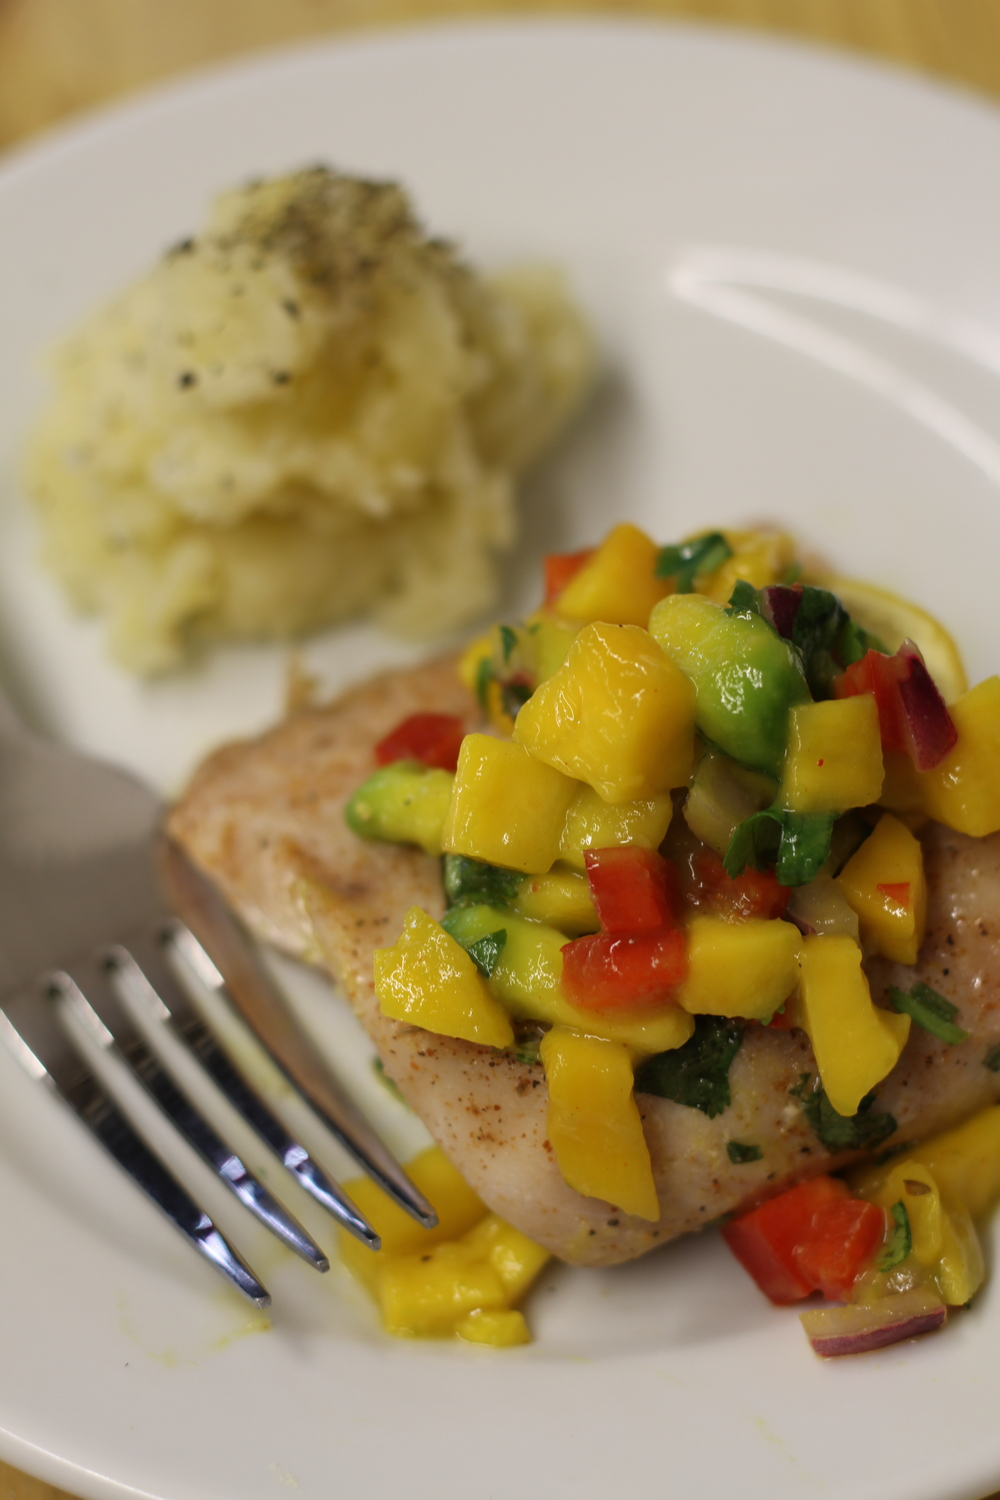 Grilled Snapper and Mahi Mahi with Citrus Avocado Salsa